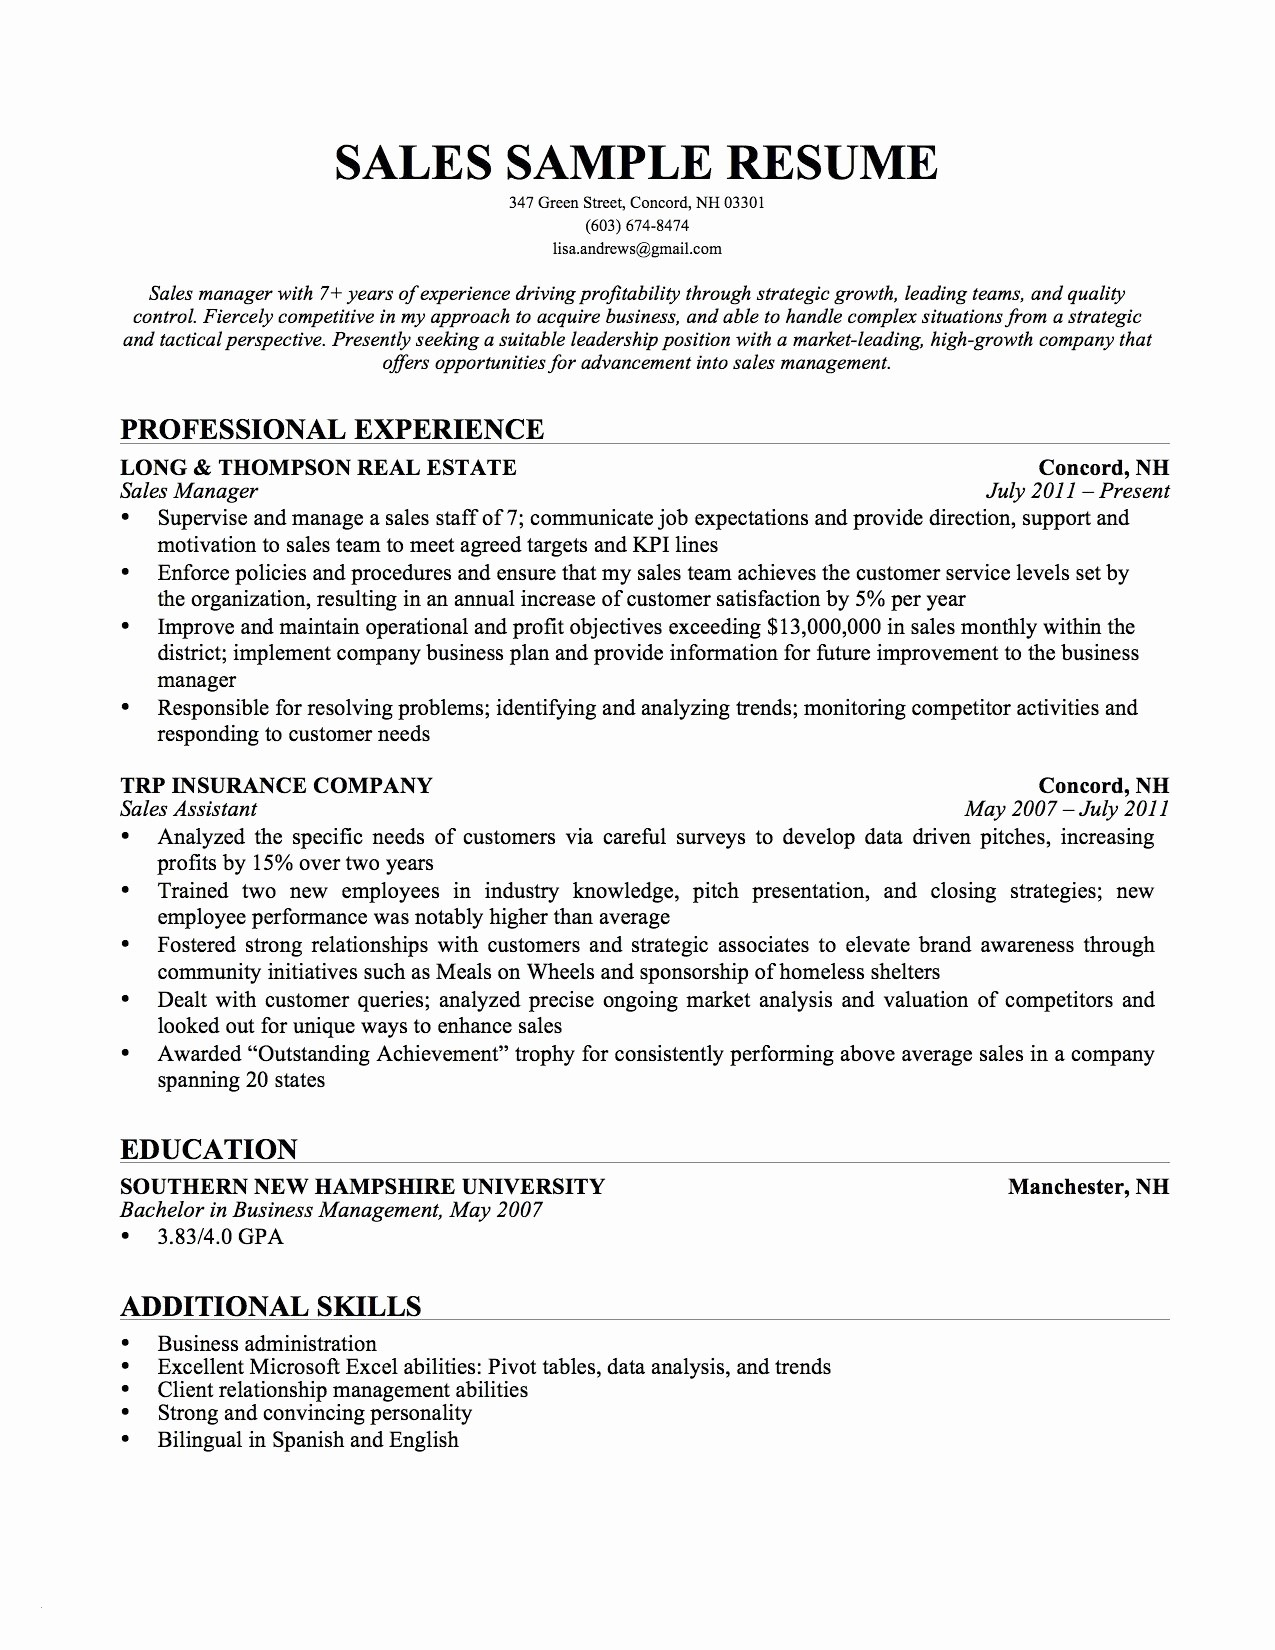 Front Desk Resume Template - Resume Templates for Entry Level Paragraphrewriter